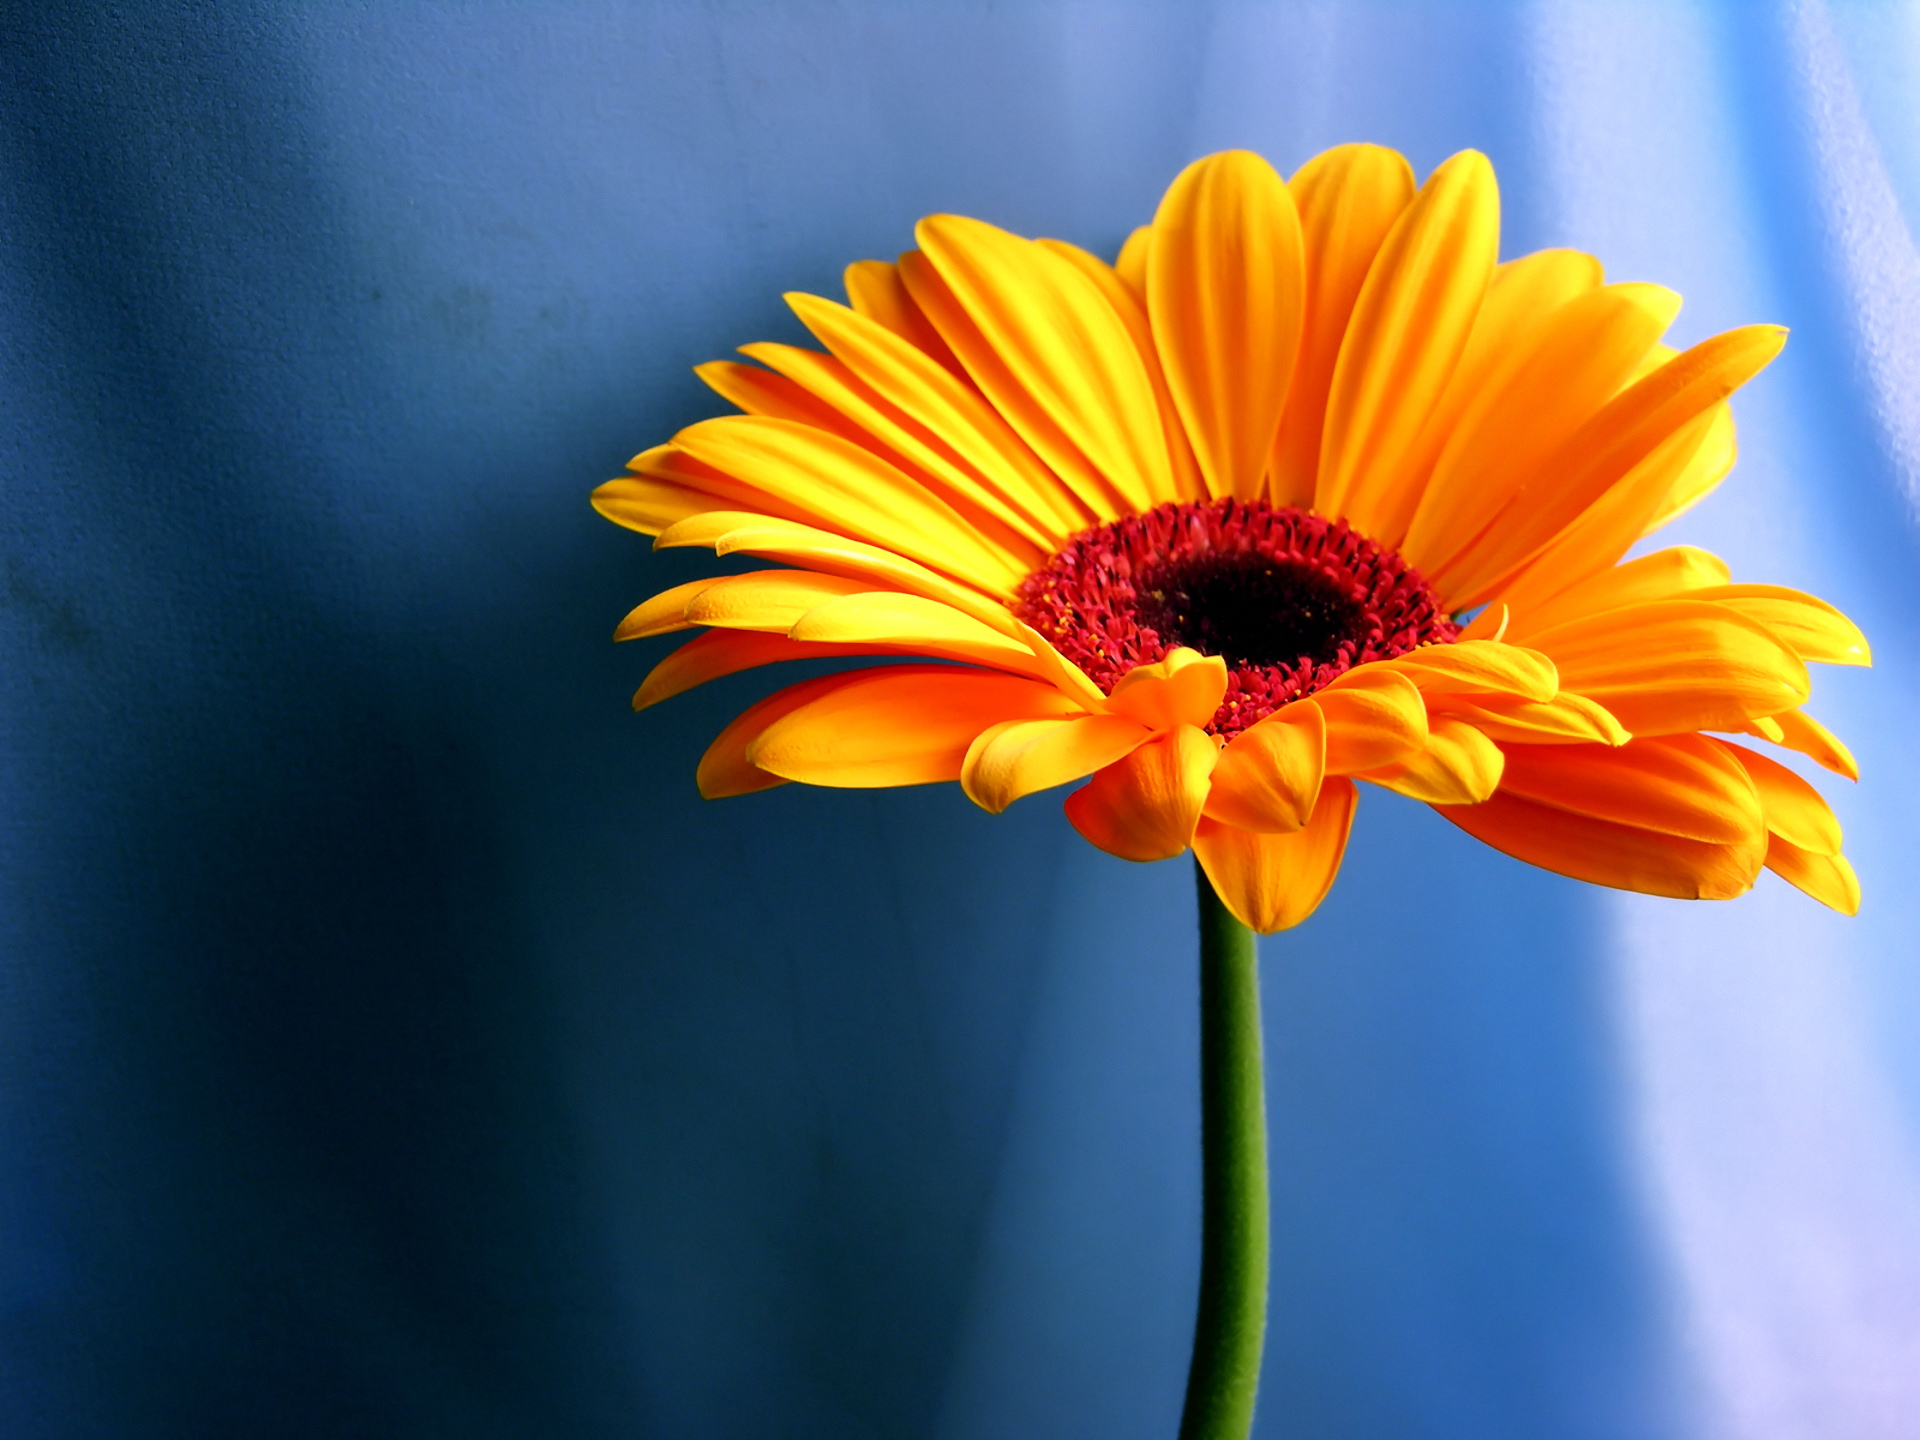 ... Orange Flower Wallpaper; Orange Flower Wallpaper